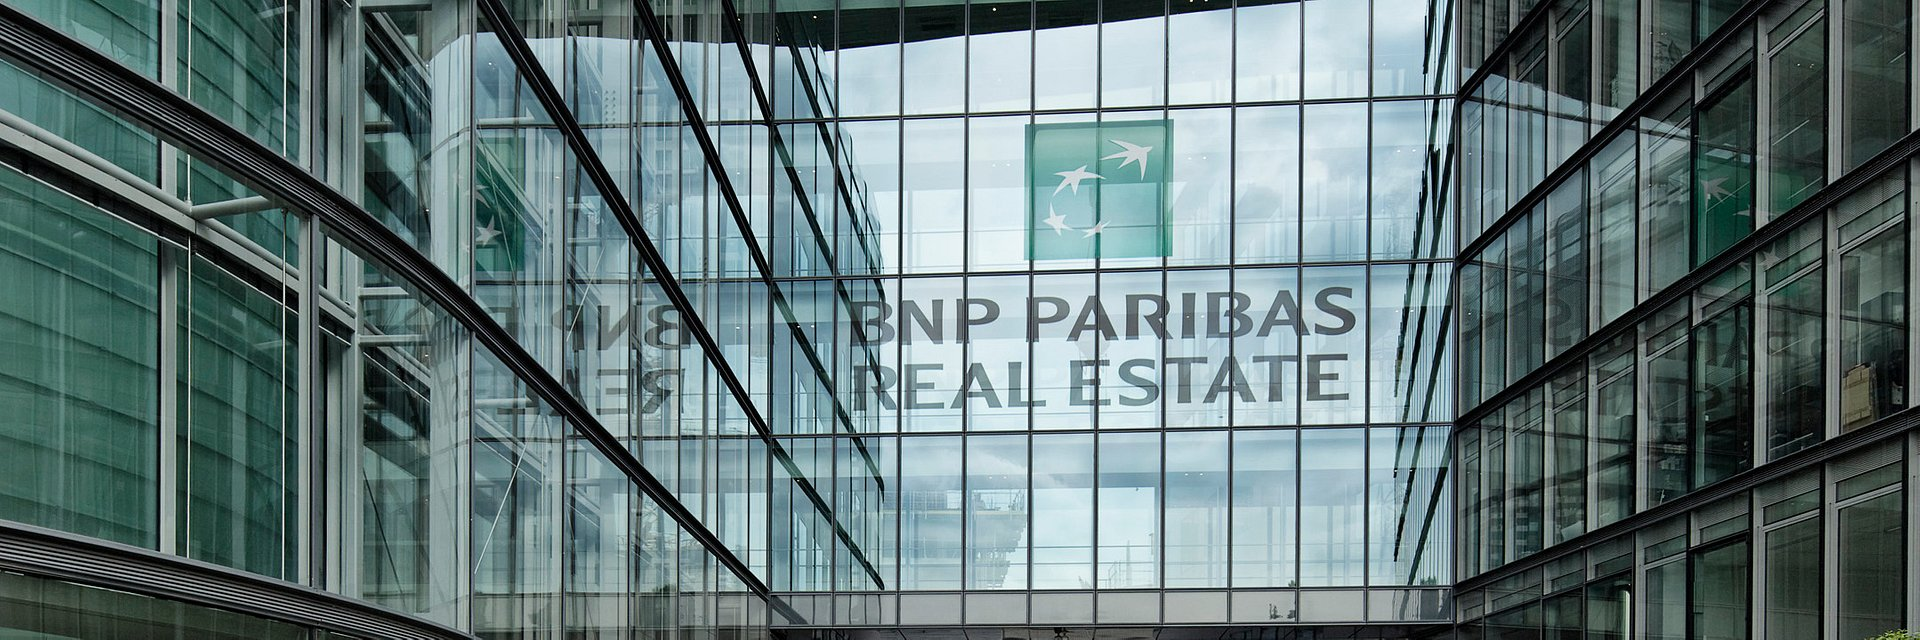 Project & Development Consultancy Department at BNP Paribas Real Estate Poland is growing stronger